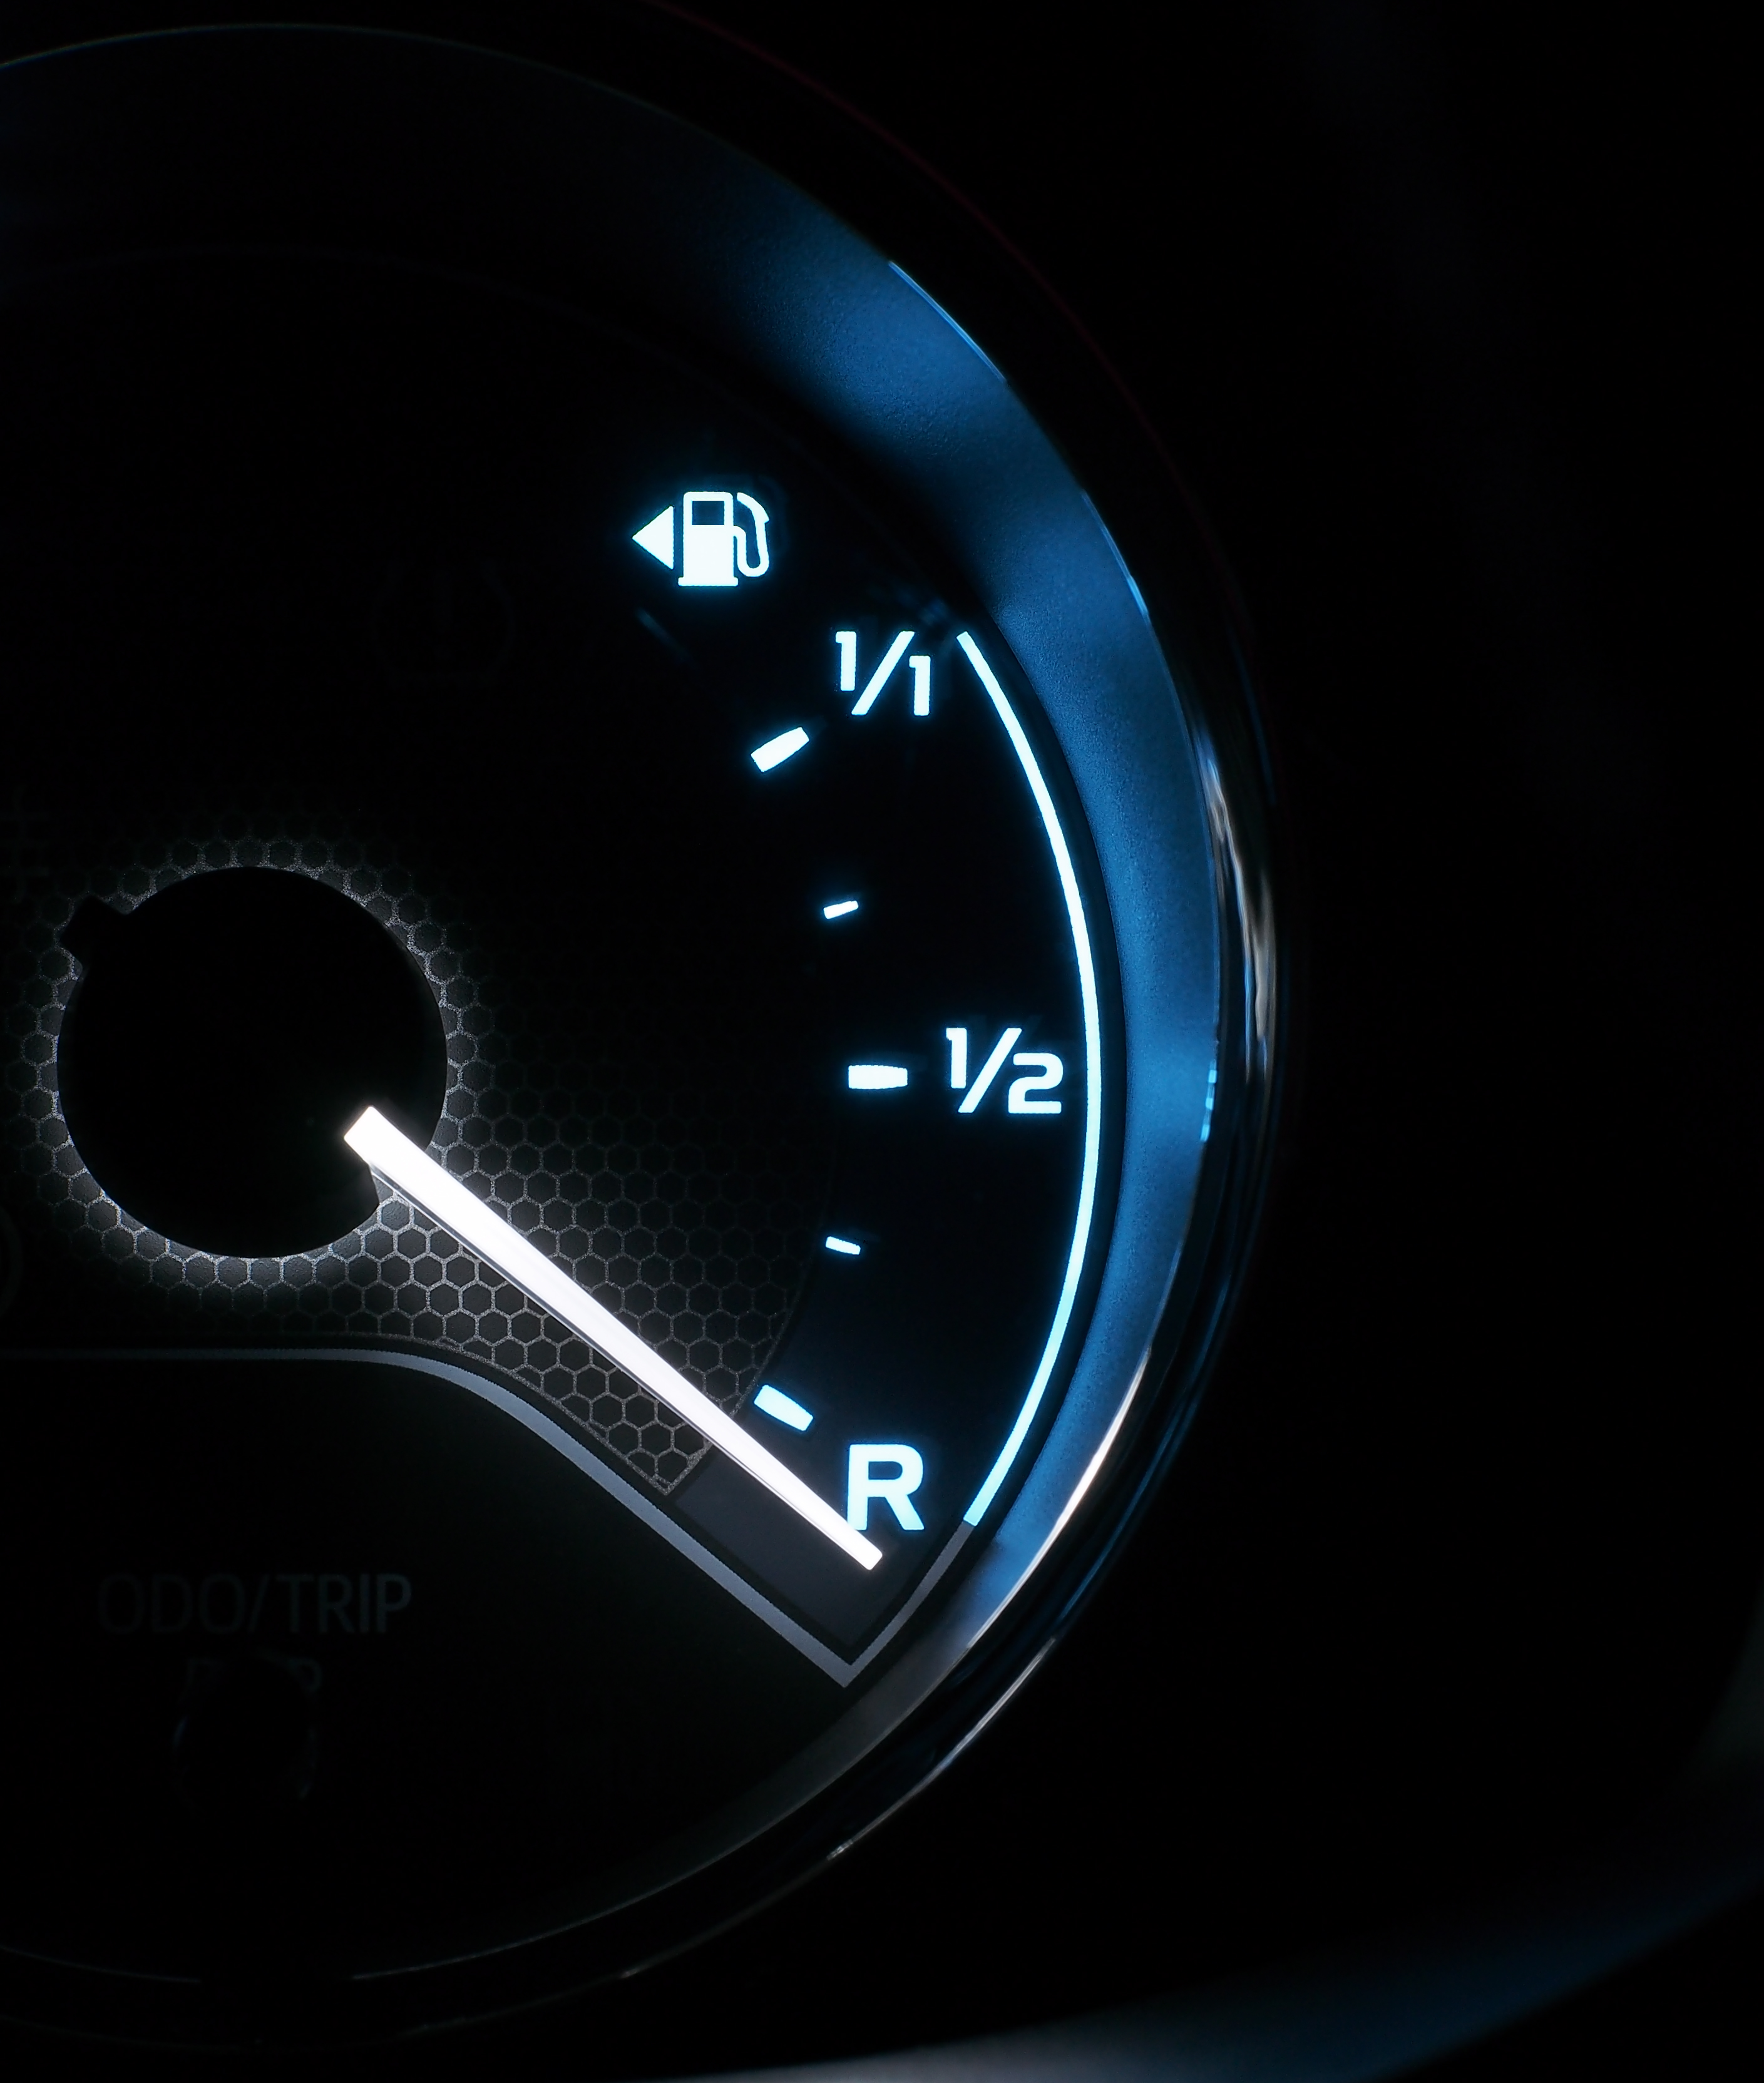 We shouldn't think of ourselves like this fuel gauge - running out of breath is normal.